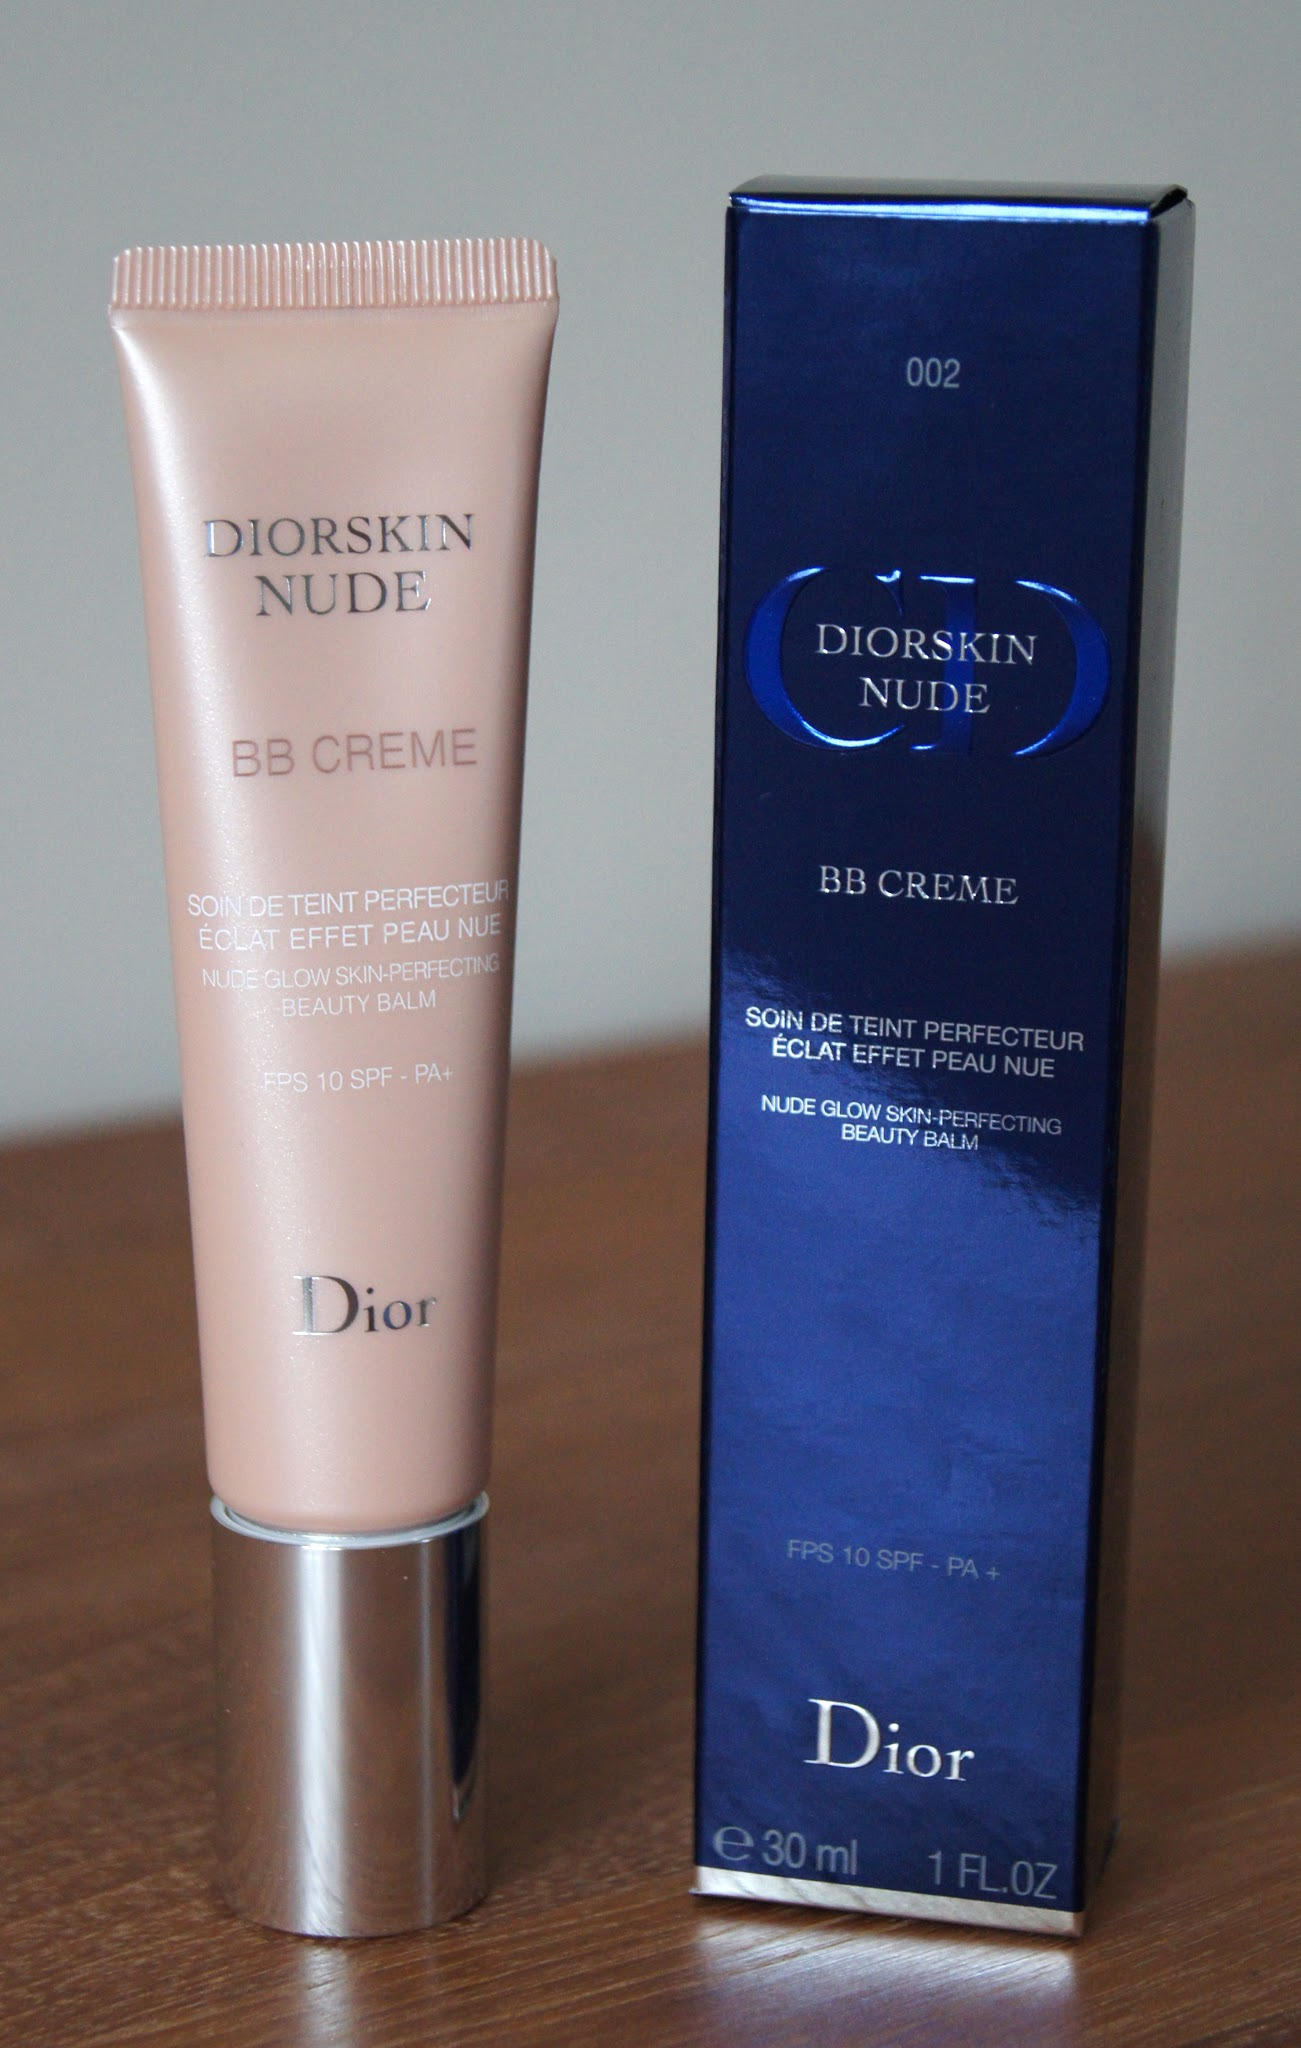 Dior Diorskin Nude BB Creme 002 Review Swatch